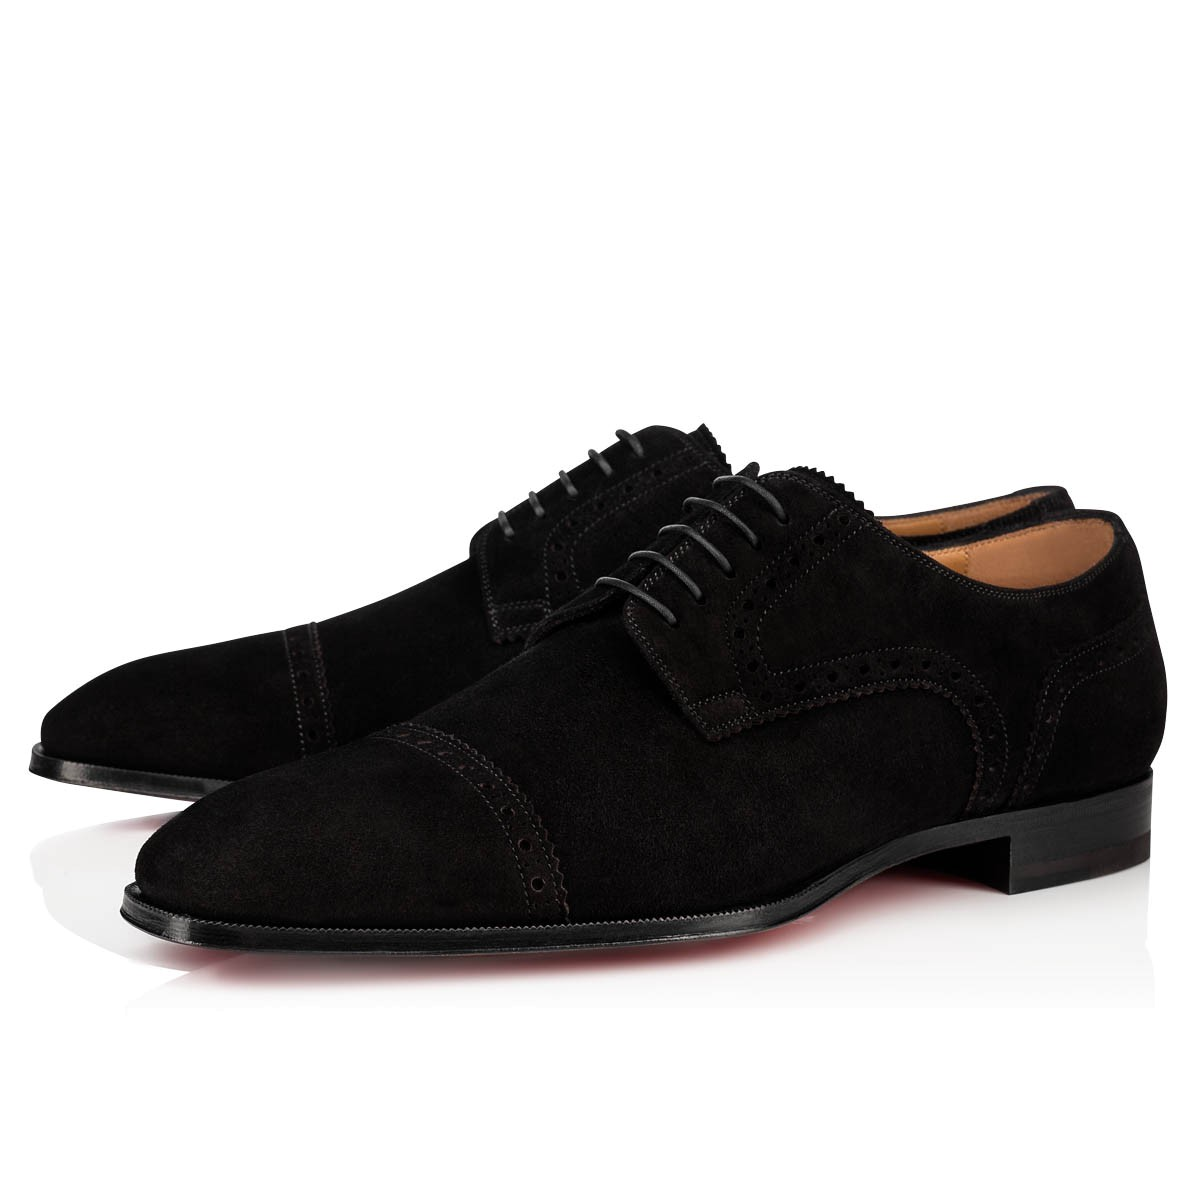 Shoes - Cousin Charles - Christian Louboutin